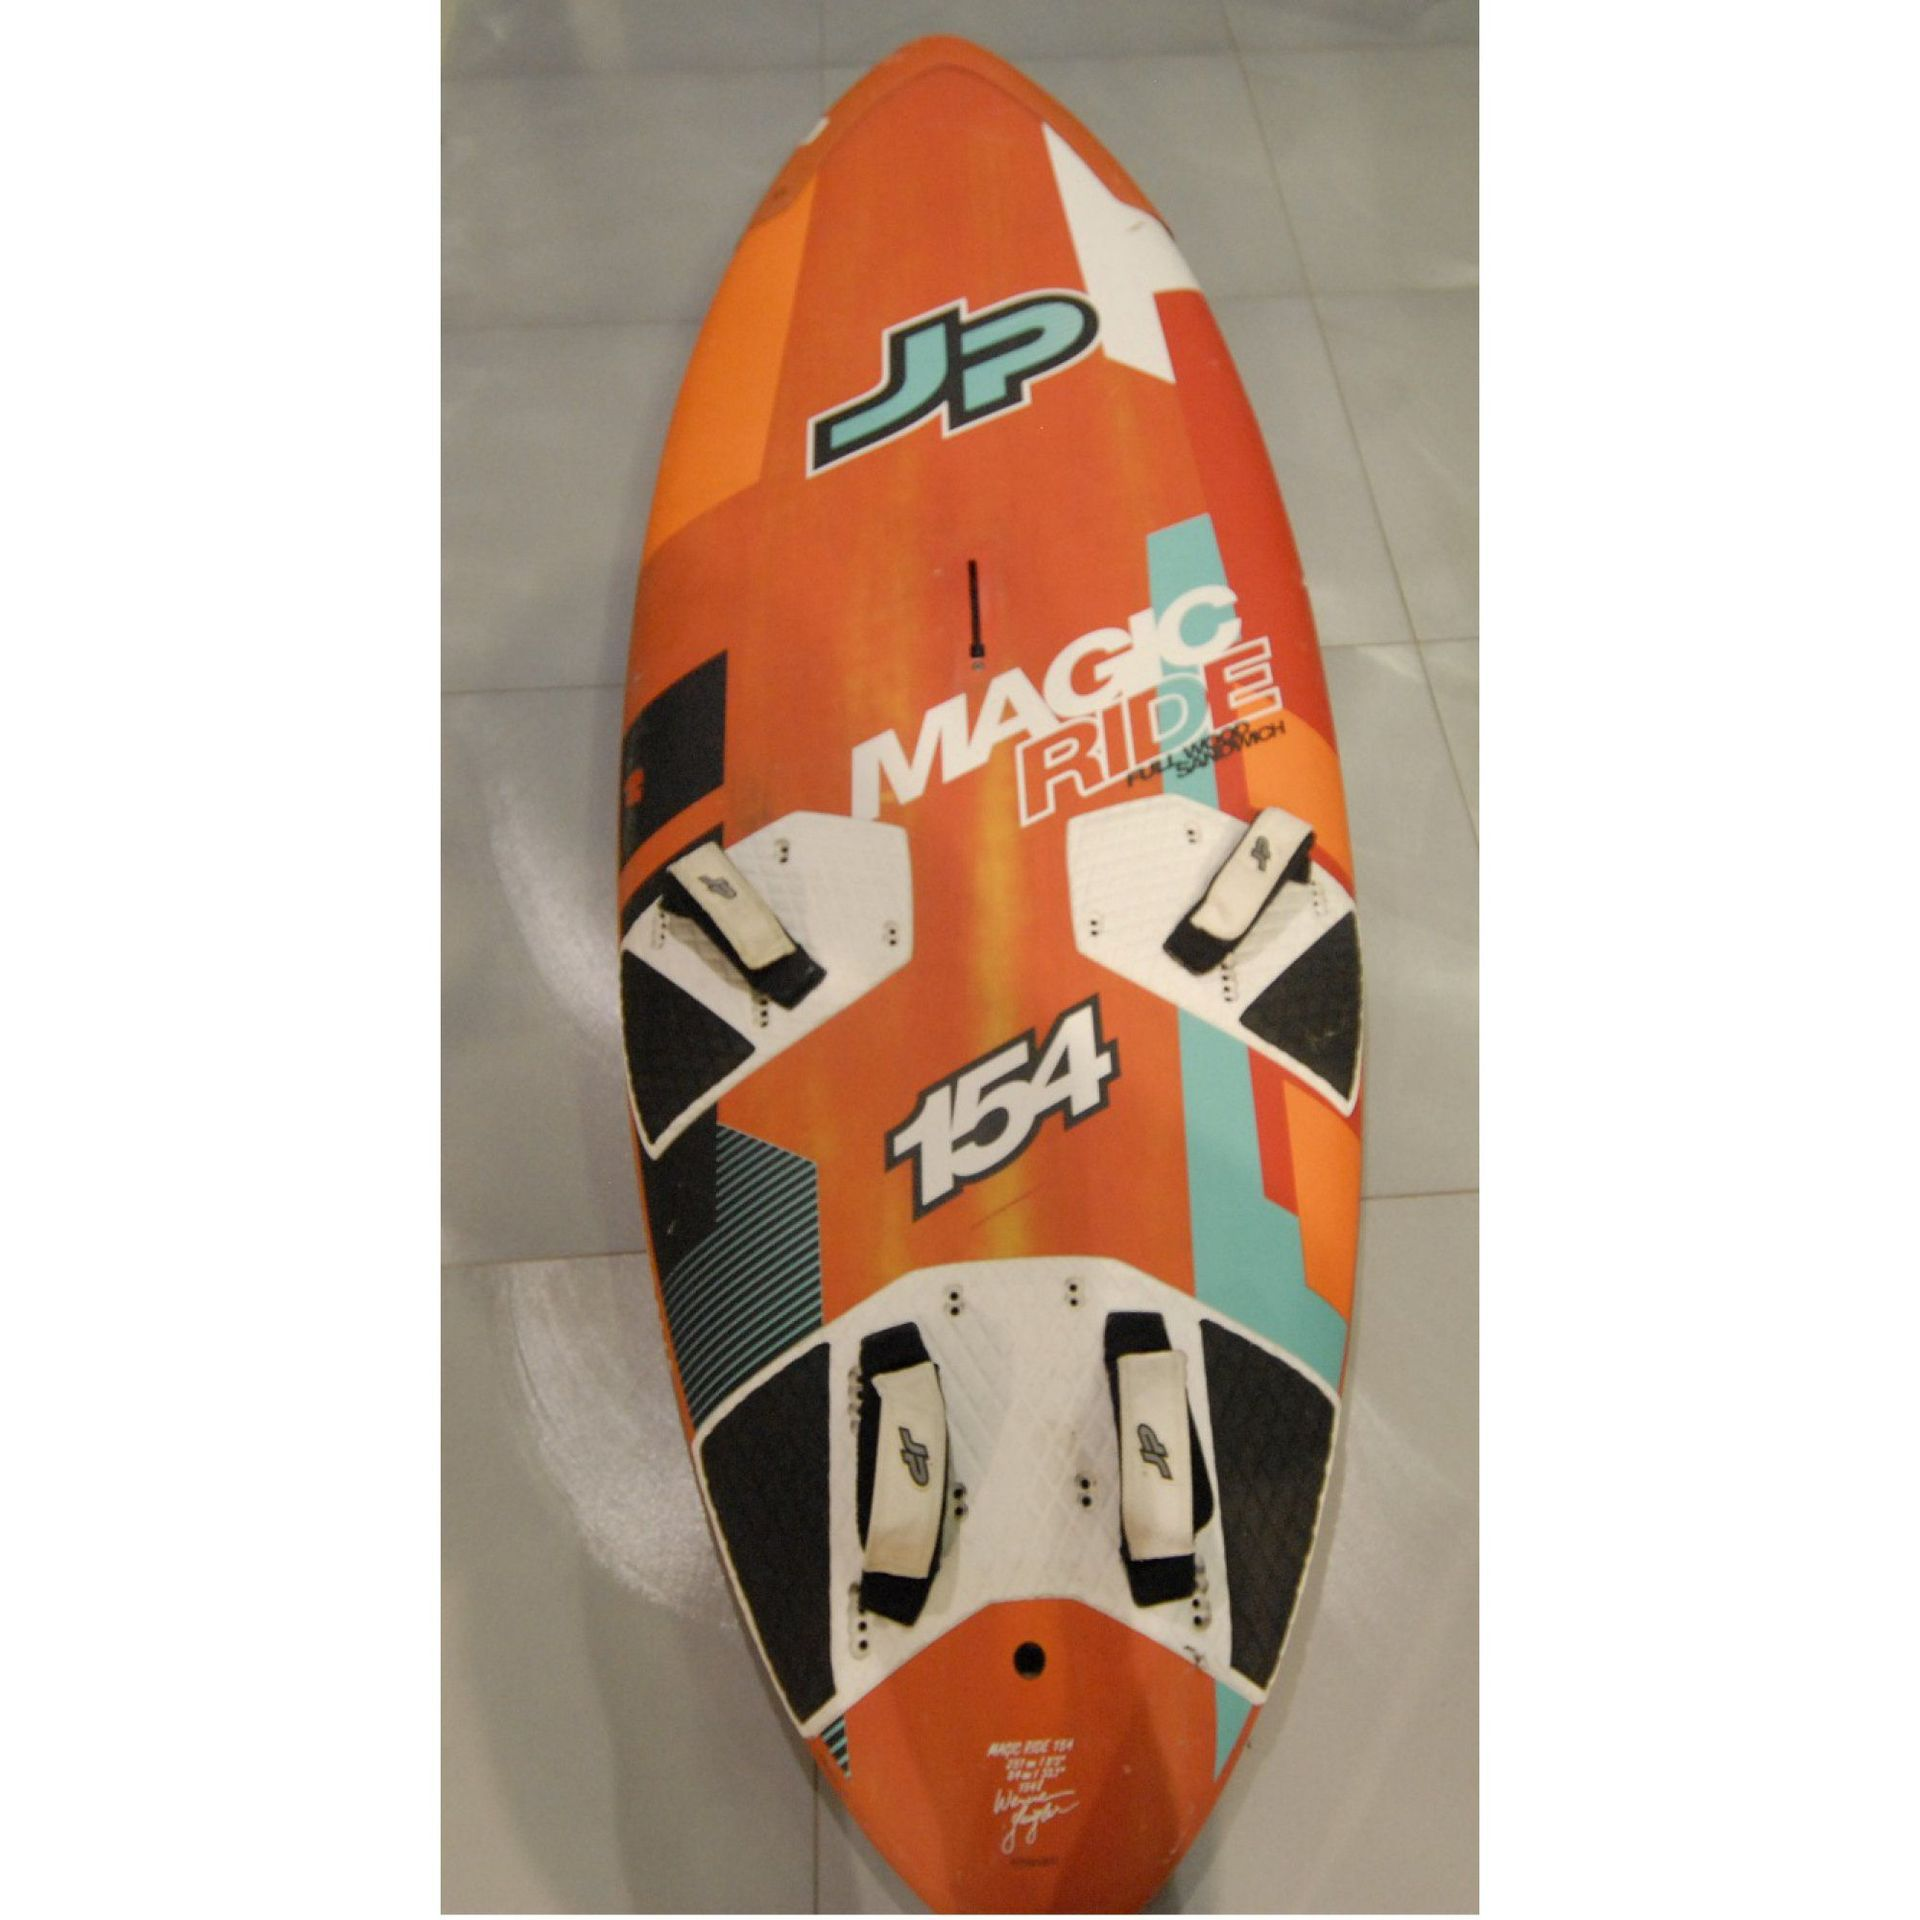 DESKA JP MAGIC RIDE FWS 154 - UŻYWANA FREERIDE (1715411)